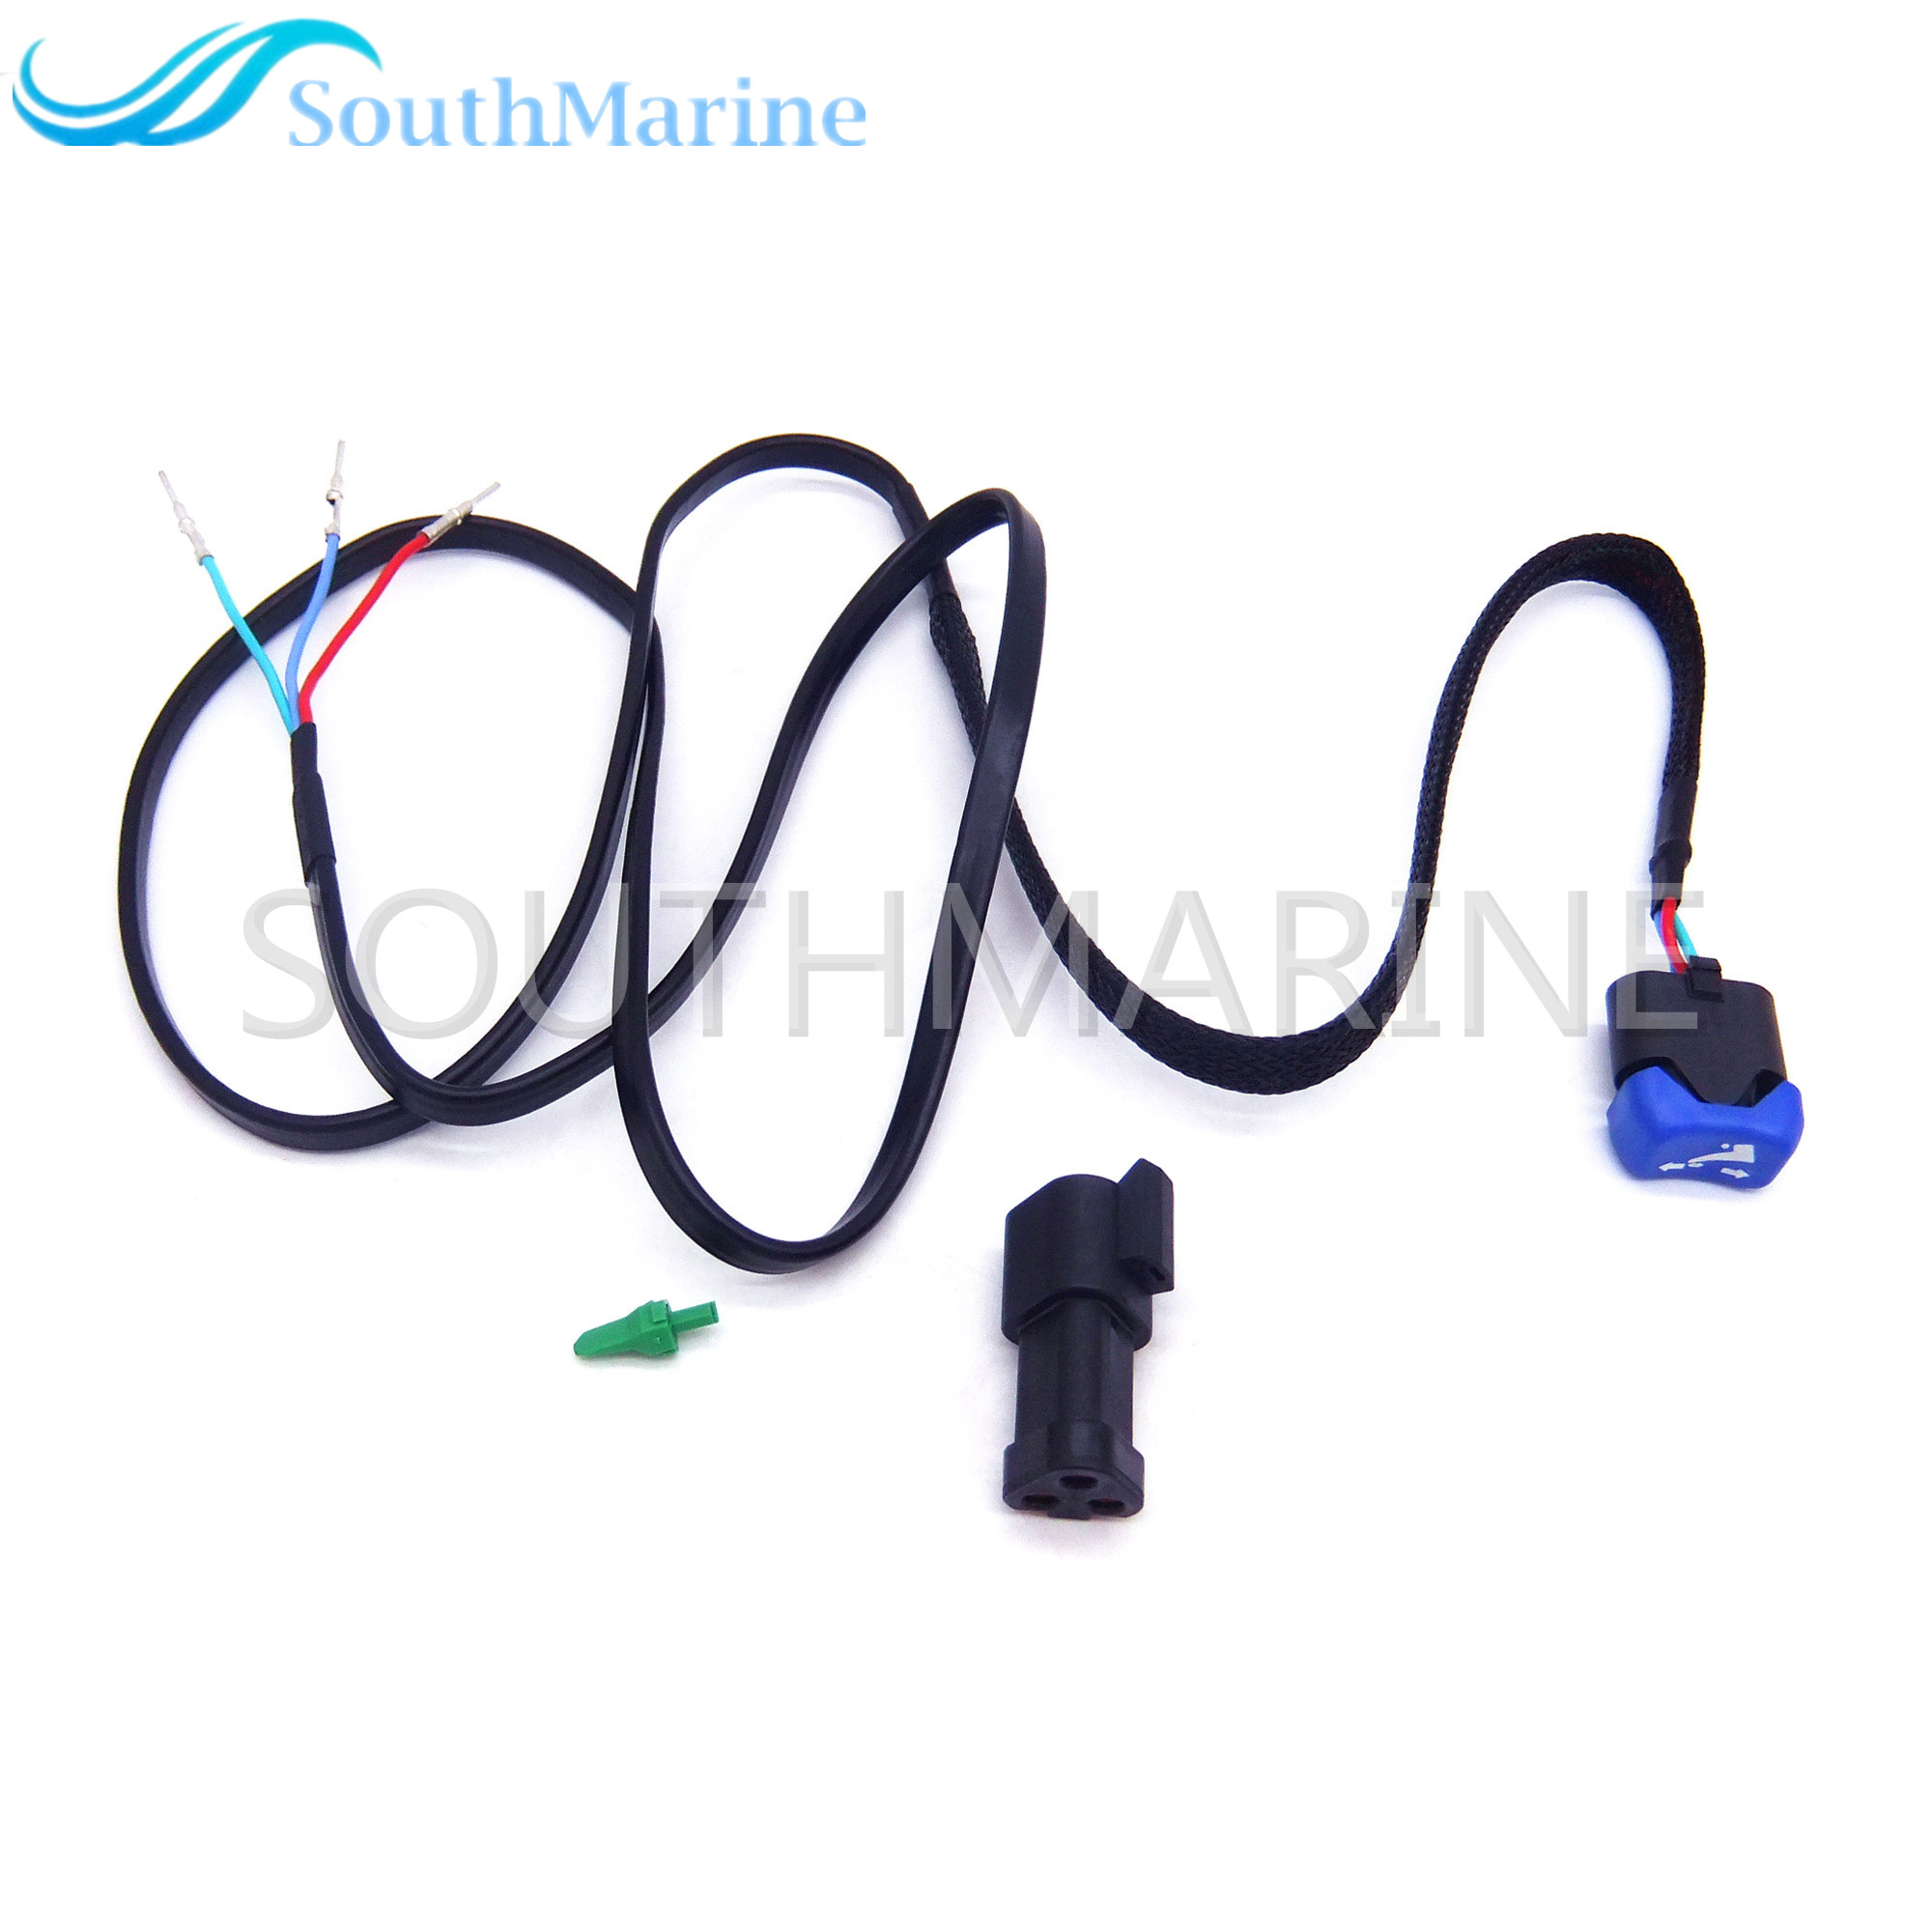 small resolution of magideal 175974 5005801 ignition switch key assembly with lanyard for omc johnson evinrude 40